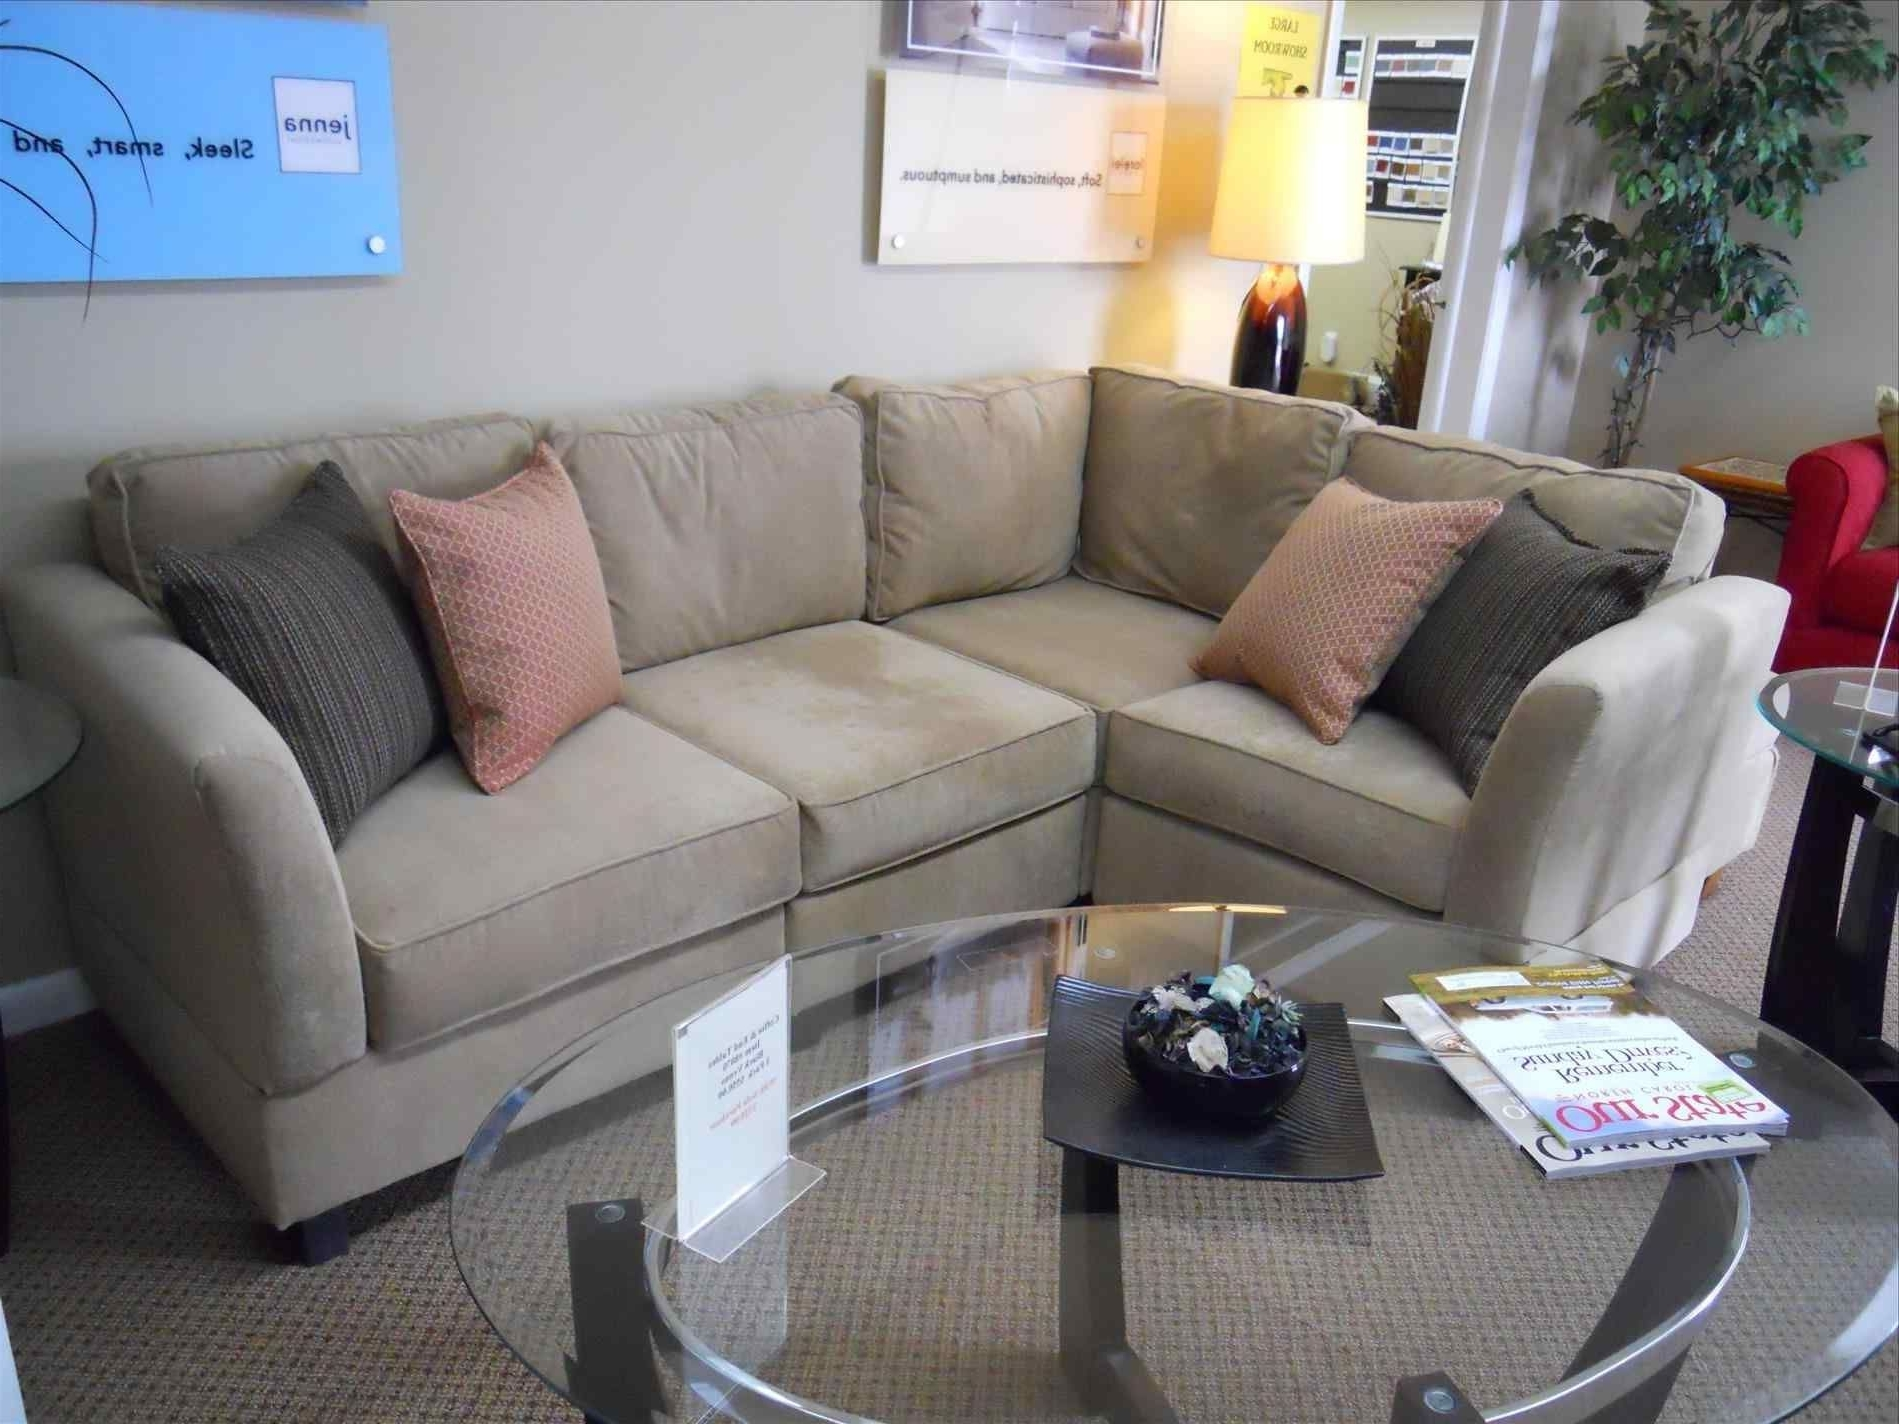 For Cozy Living Room Lazy Boy Chair Home Designs Lazy Sectional Within 2018 Modern Sectional Sofas For Small Spaces (View 5 of 20)